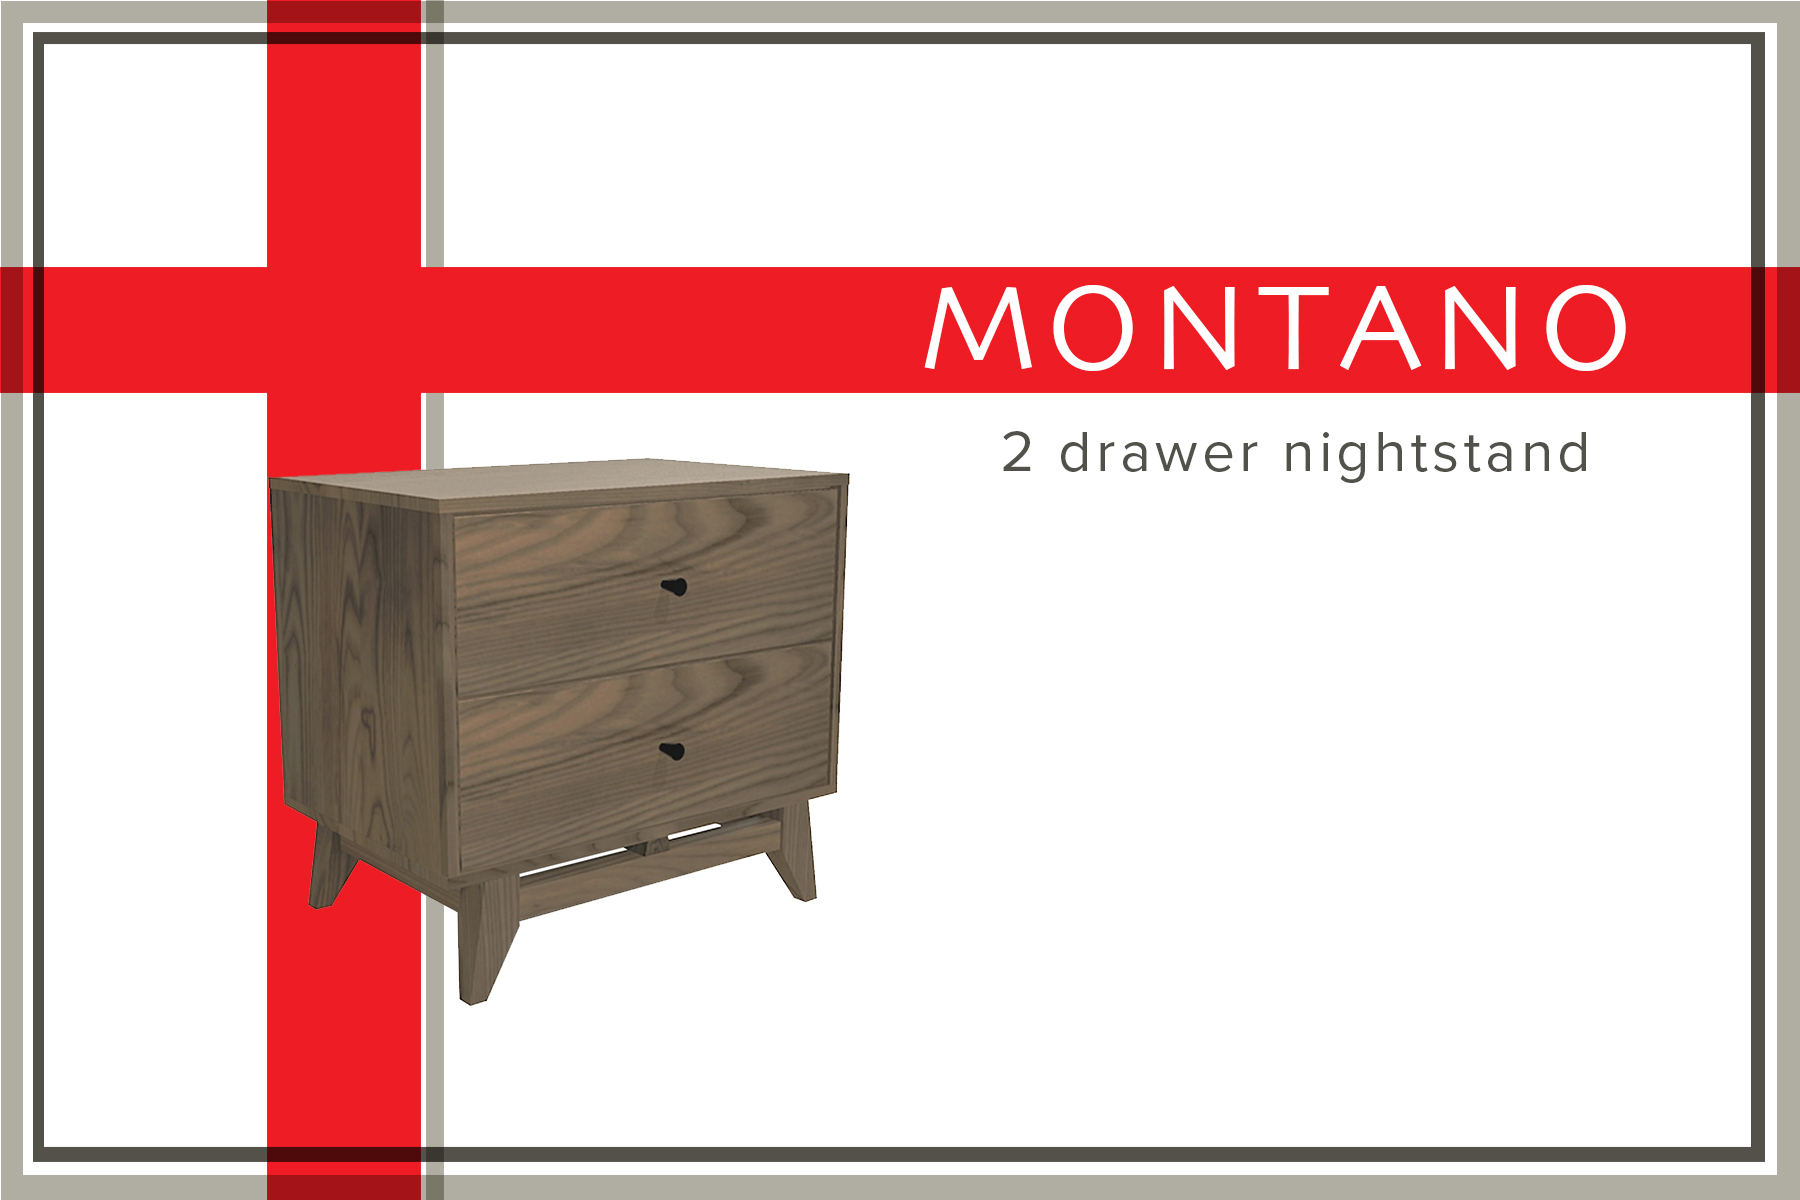 Montano 2 drawer nightstand